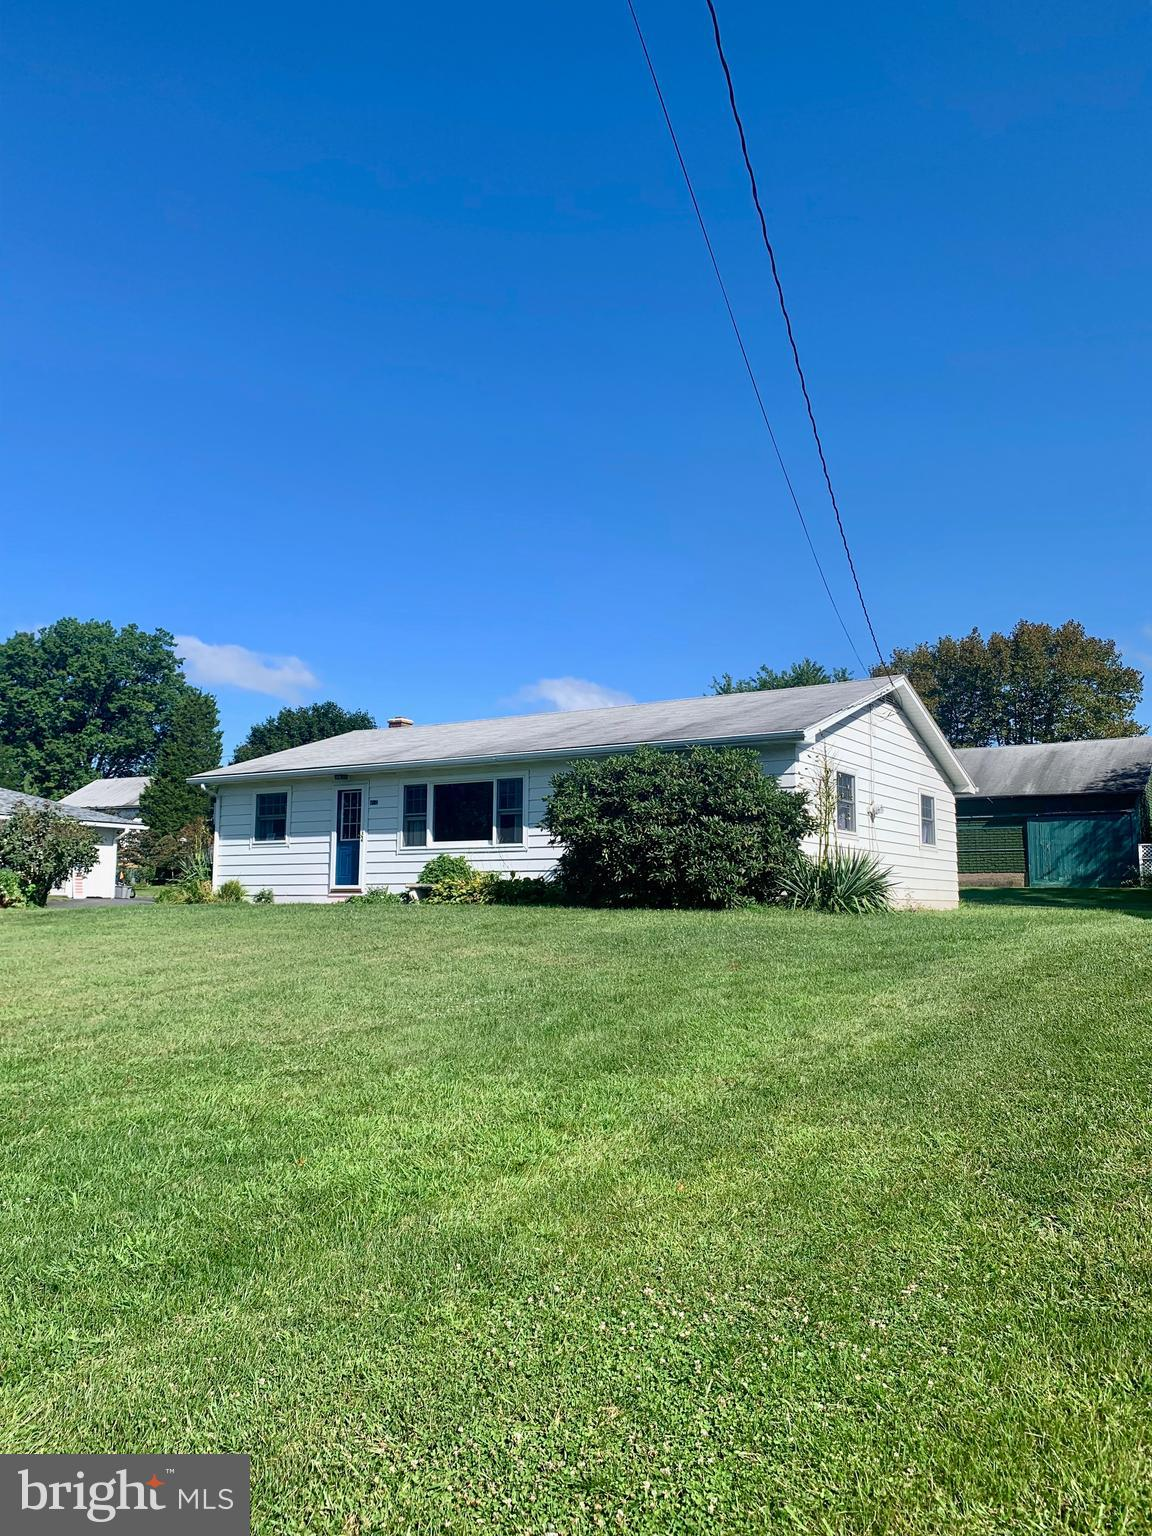 410 W MAPLE STREET, VALLEY VIEW, PA 17983